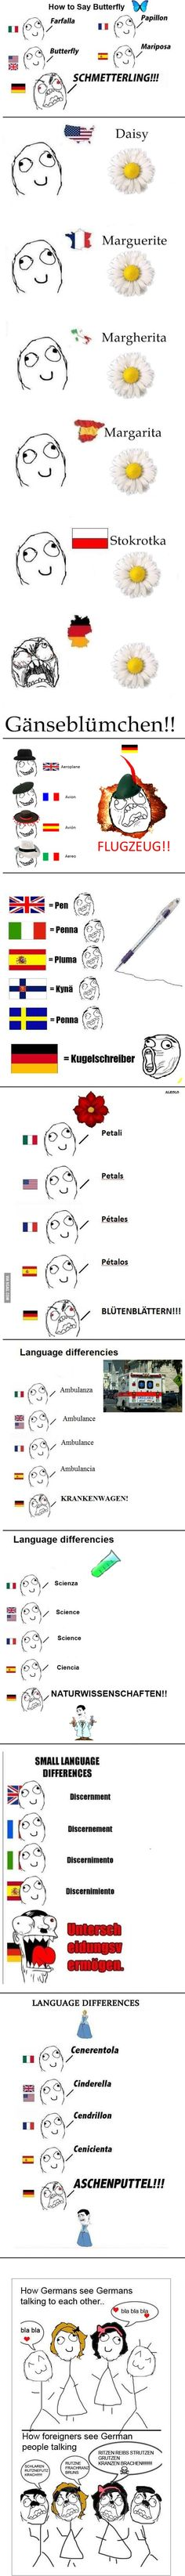 The German language